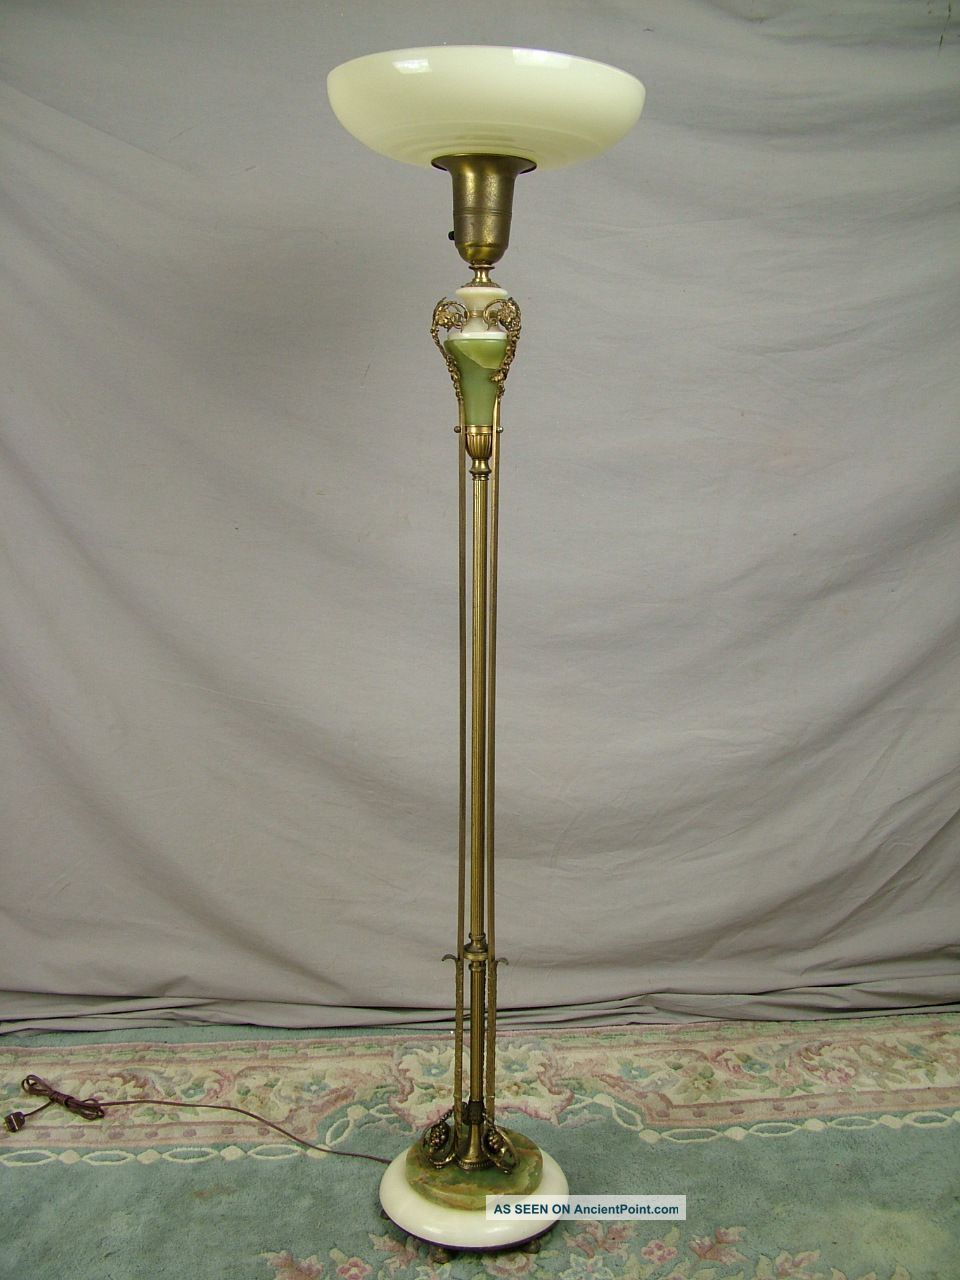 Antique Torchiere Floor Lamp Antique Floor Lamps Torchiere Floor Lamp Floor Lamp